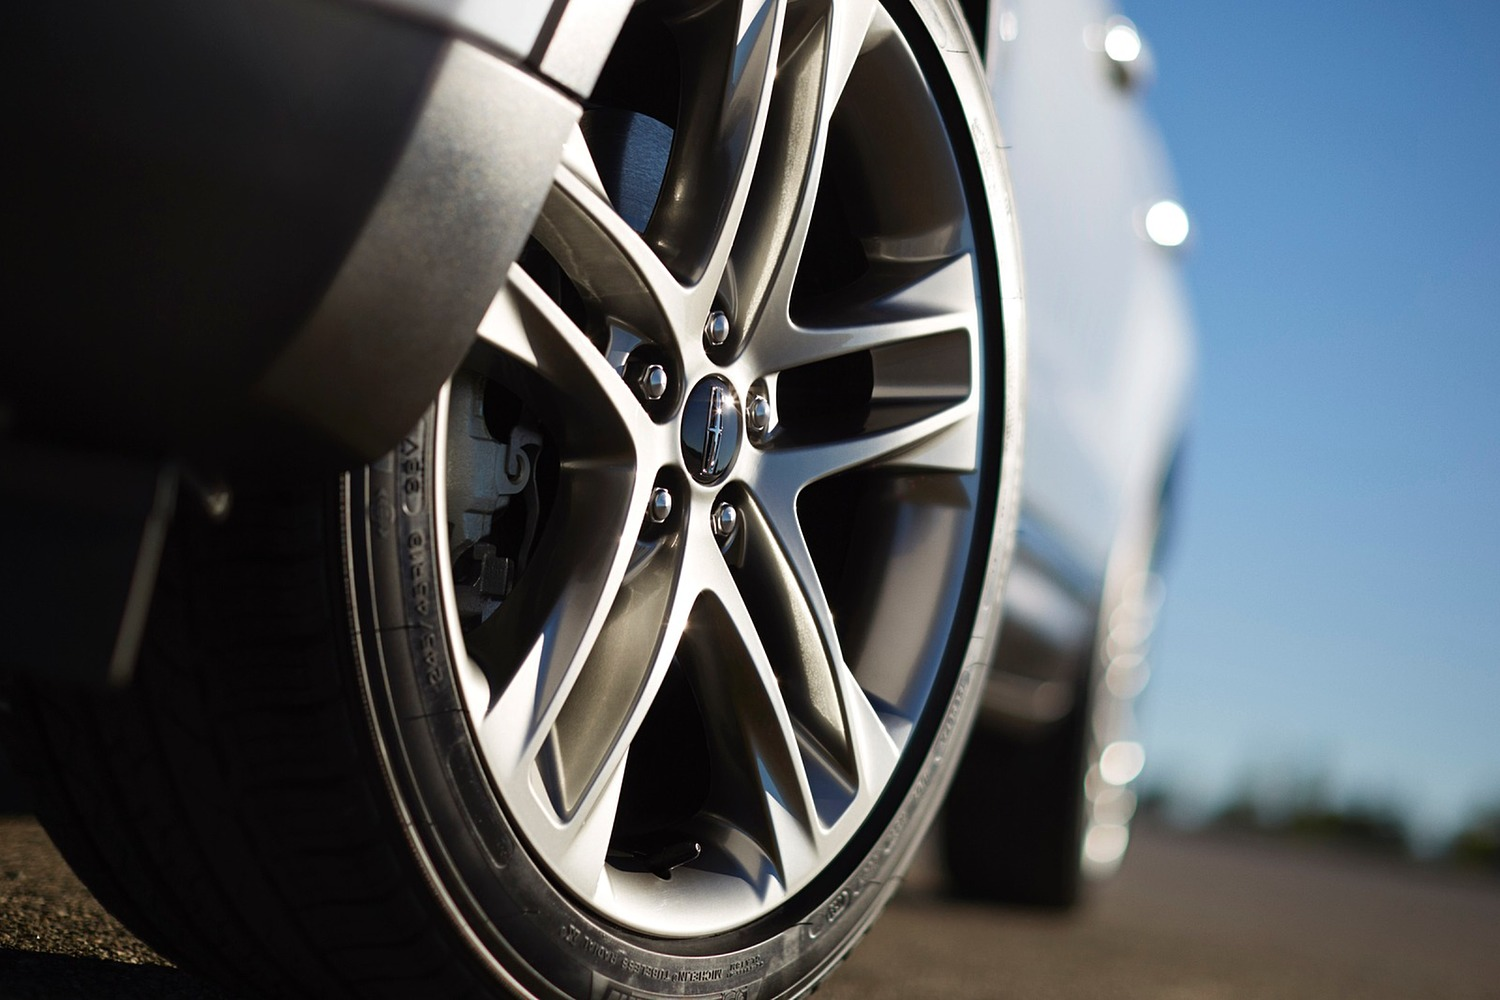 Lincoln MKC Select 4dr SUV Wheel (2016 model year shown)